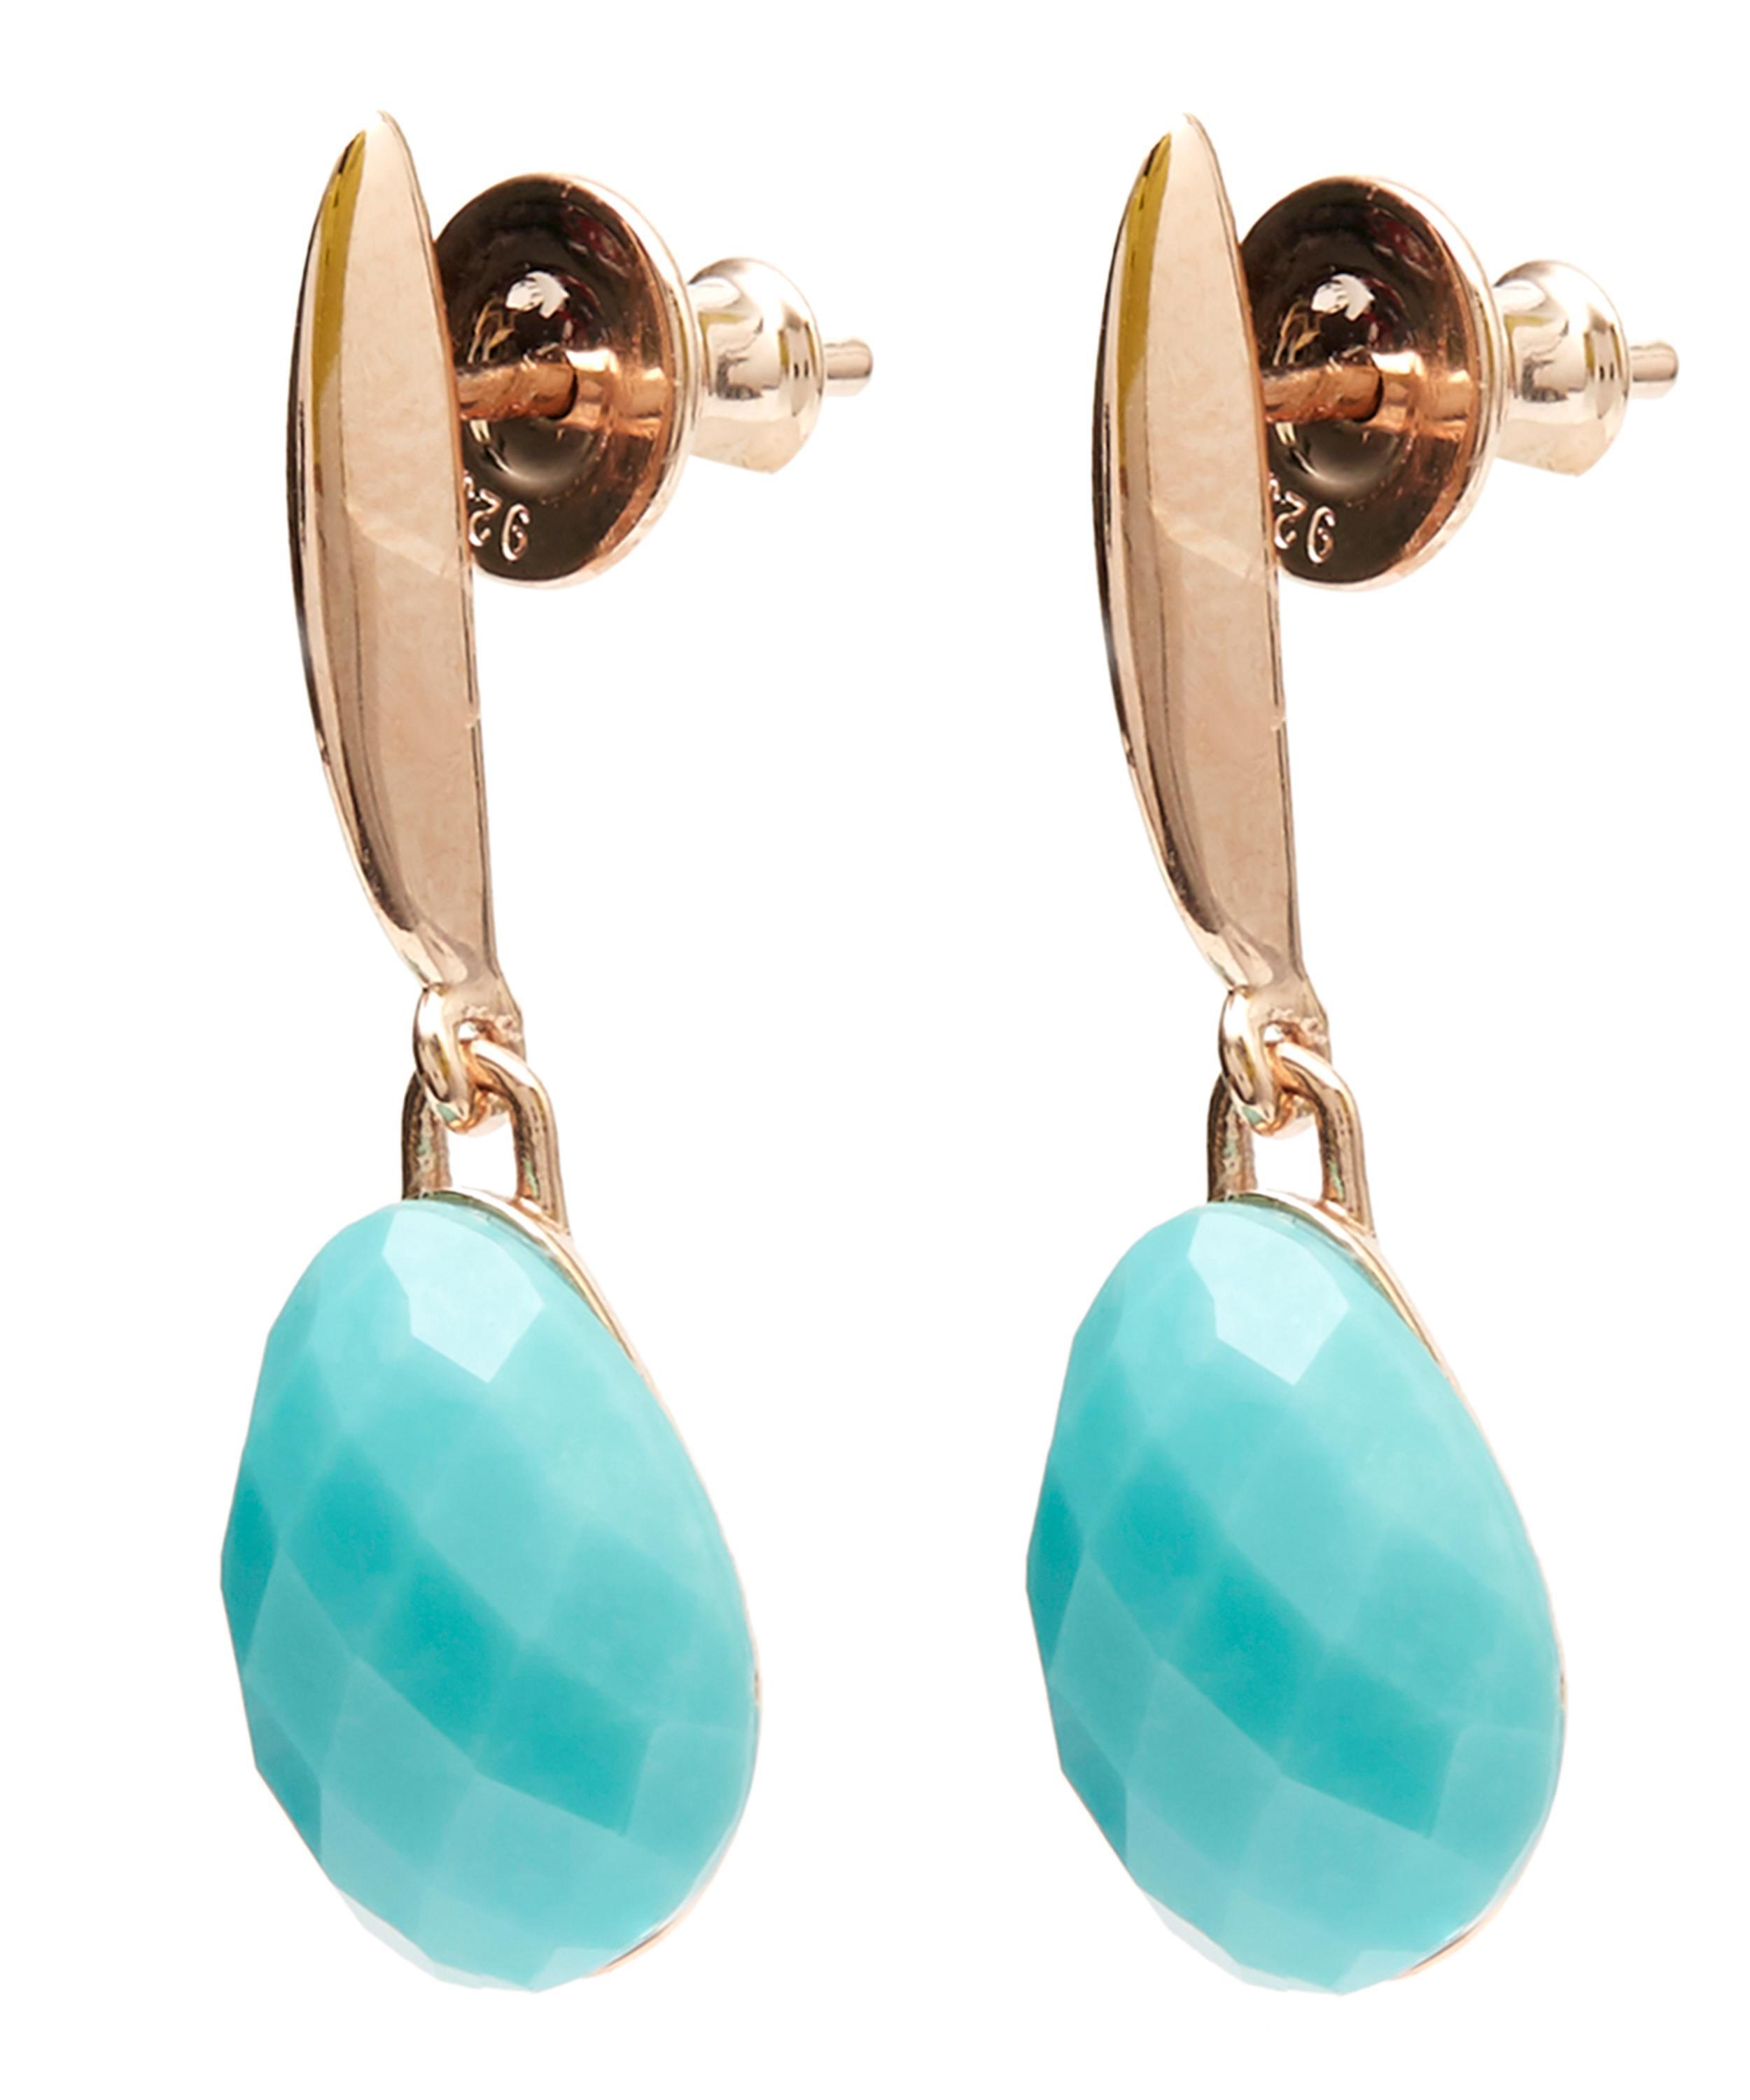 Rose Gold Nura Small Teardrop Earrings Turquoise Monica Vinader A4guKyII78